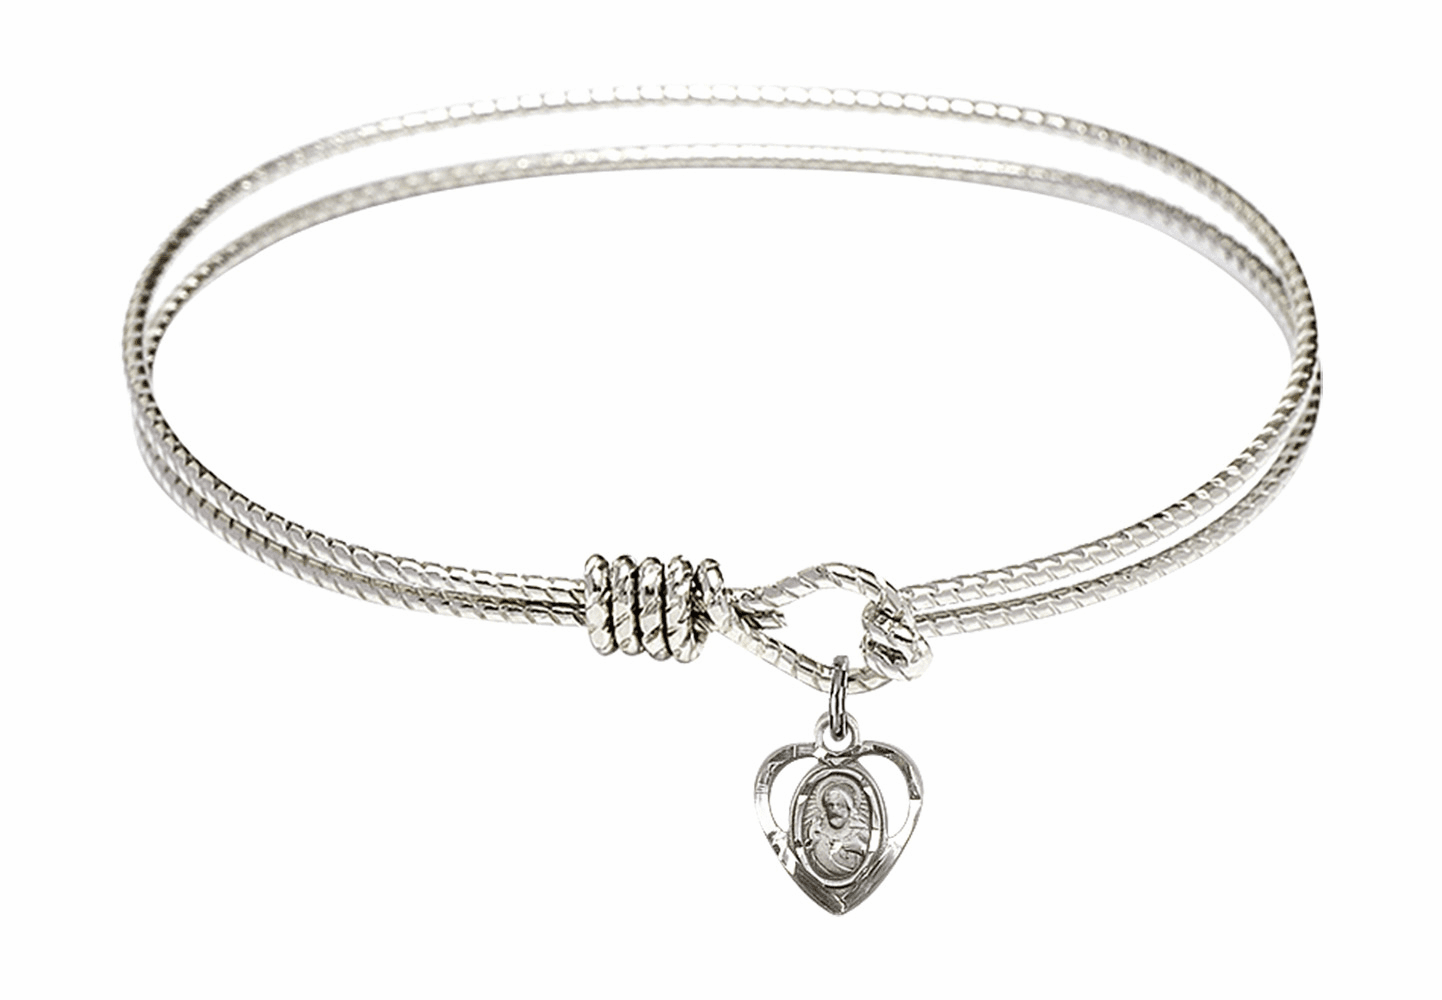 Round Twist Eye Hook Bangle Bracelet w/Sacred Heart Sterling Silver Charm by Bliss Mfg